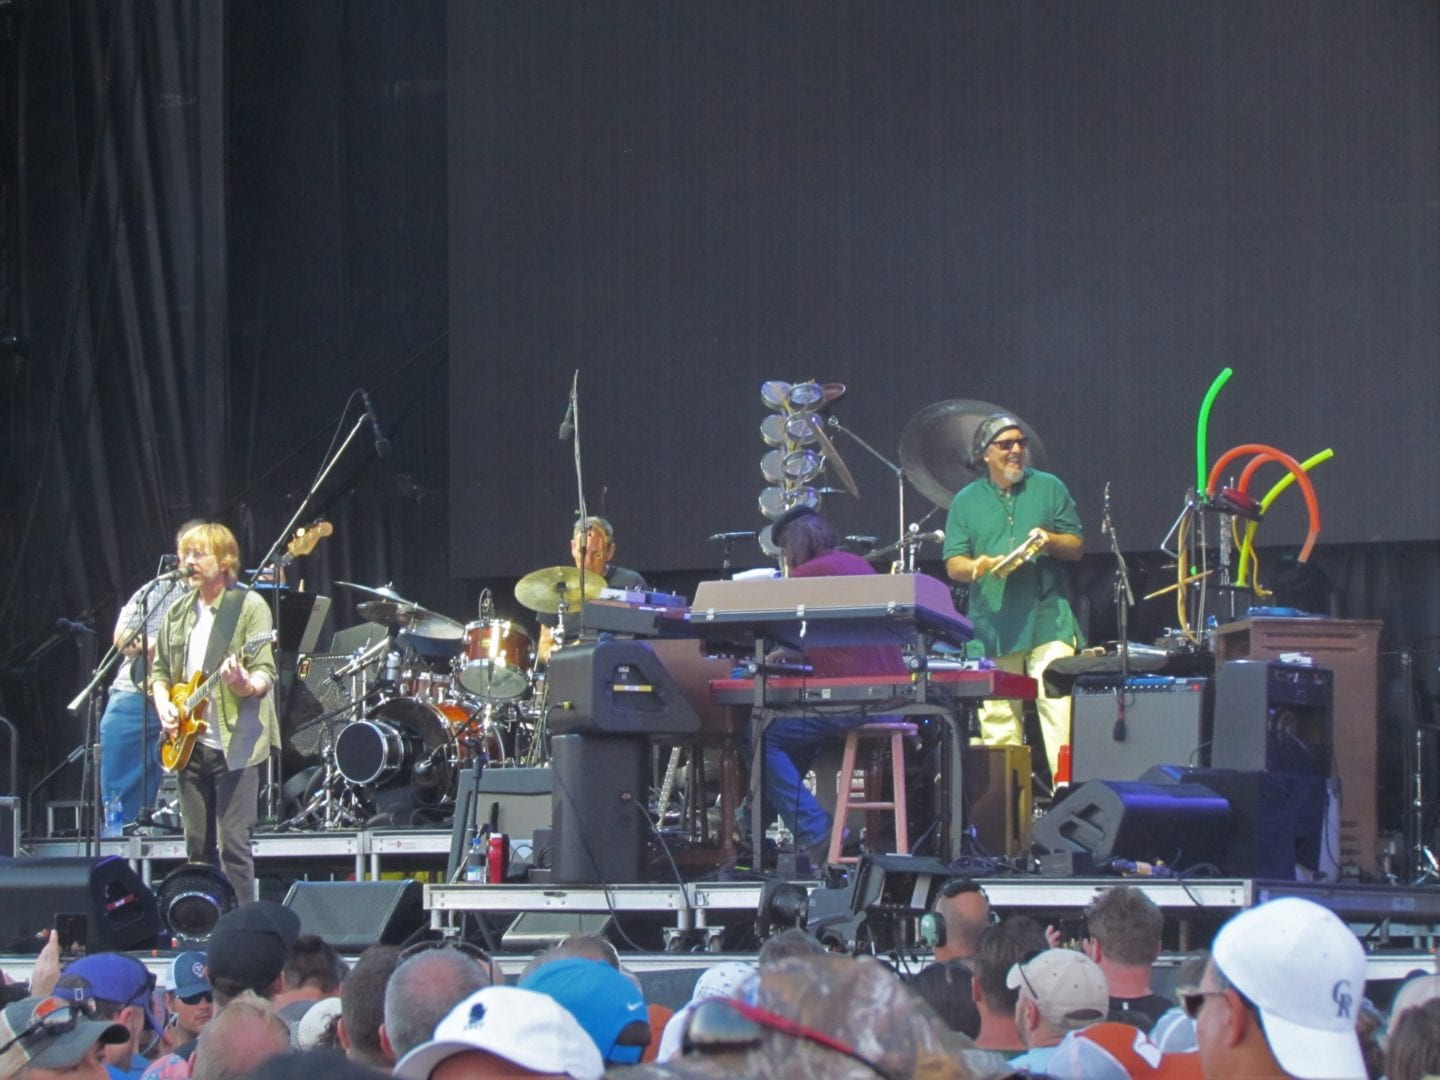 Trey Anastasio and his band up on the stage